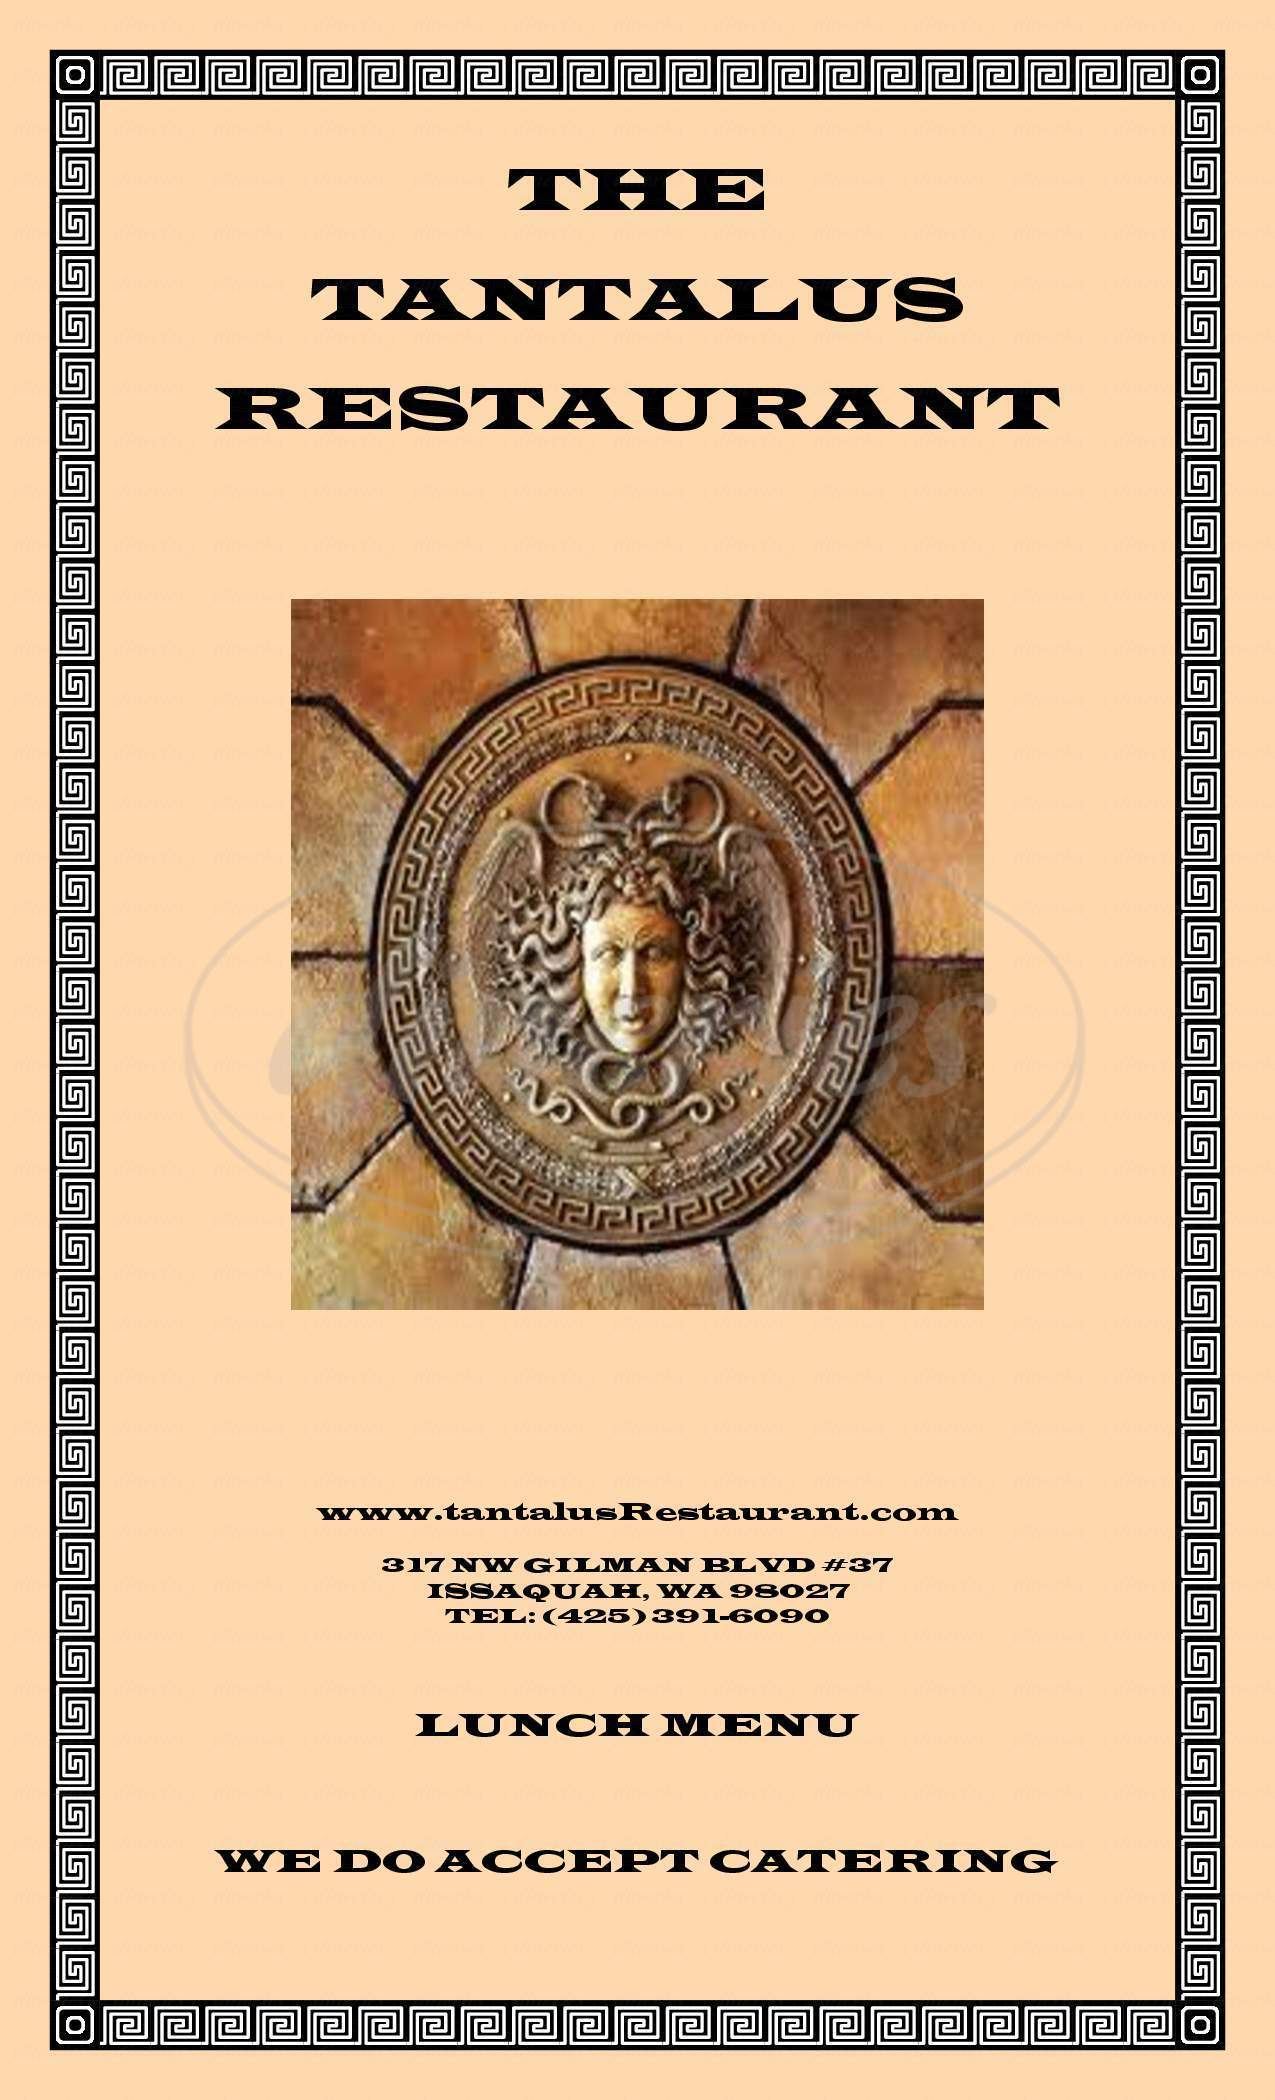 menu for Tantalus Restaurant